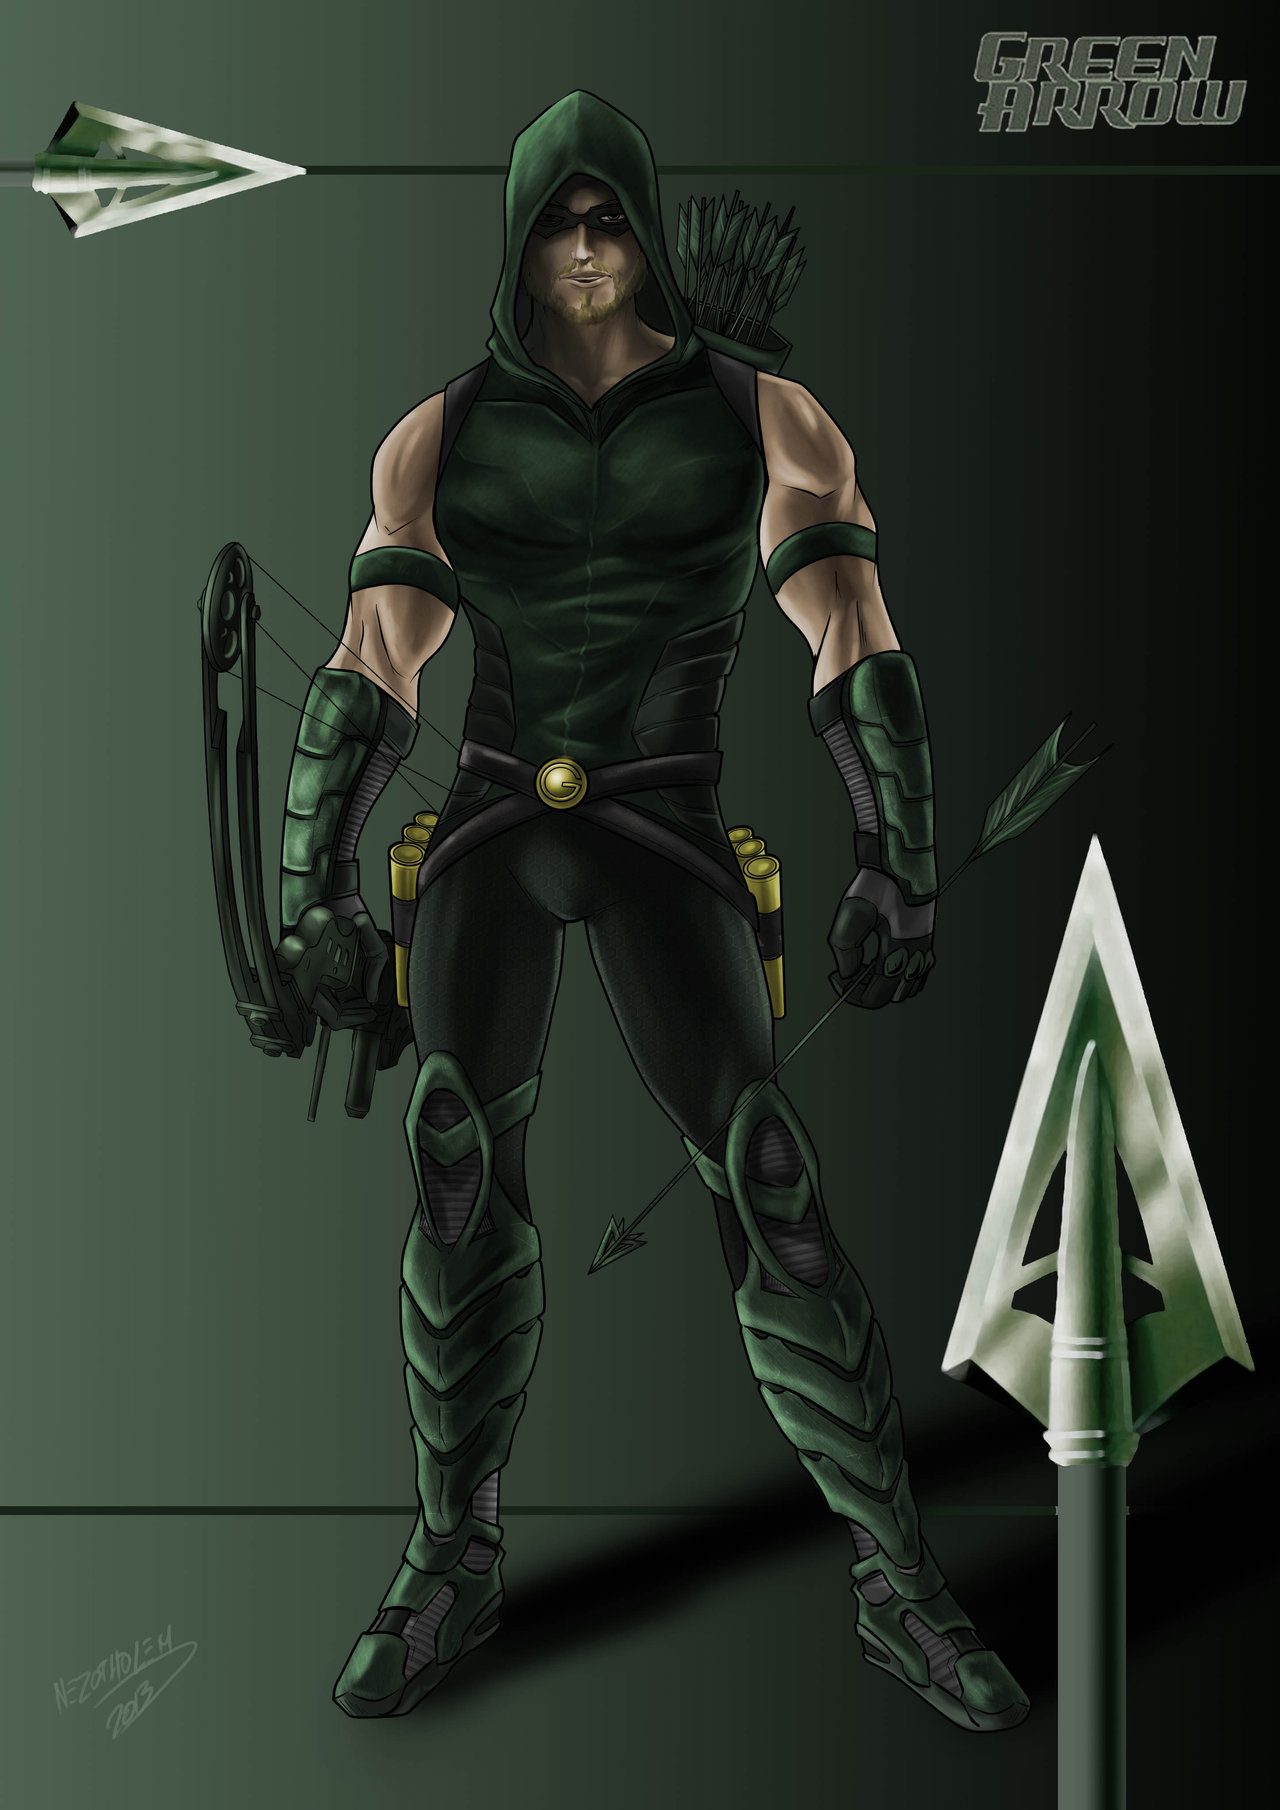 Green arrow images clip royalty free library 17 Best images about Green Arrow <3 on Pinterest | New print, Geek ... clip royalty free library